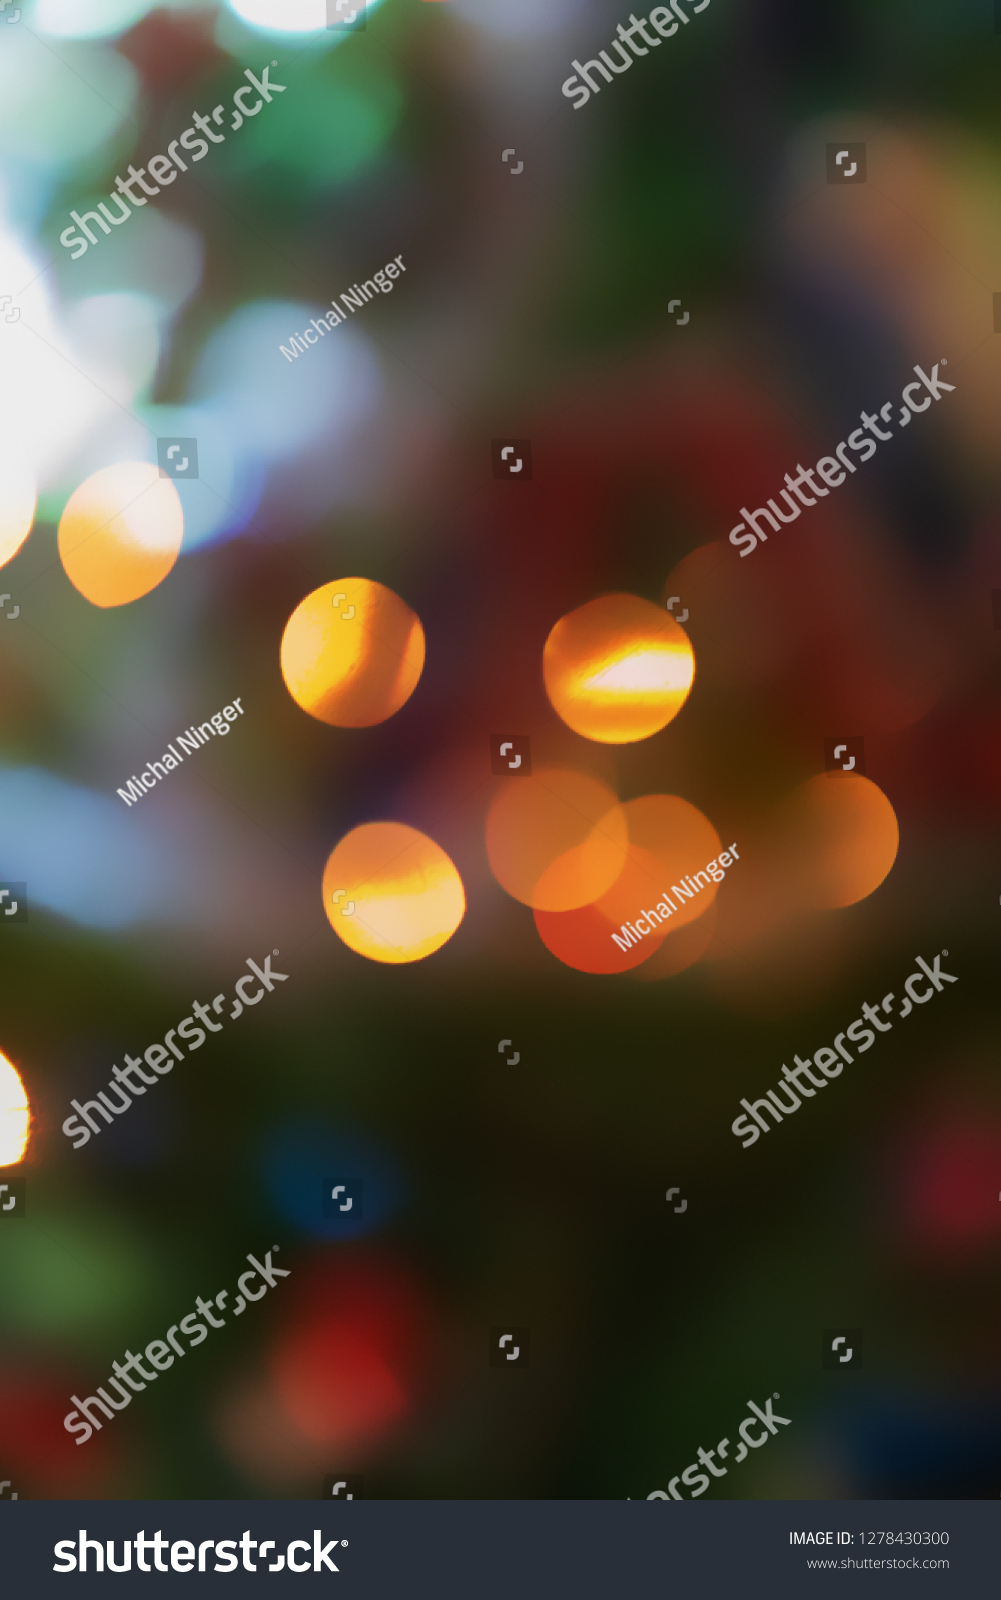 small circles lights like background from christmas tree